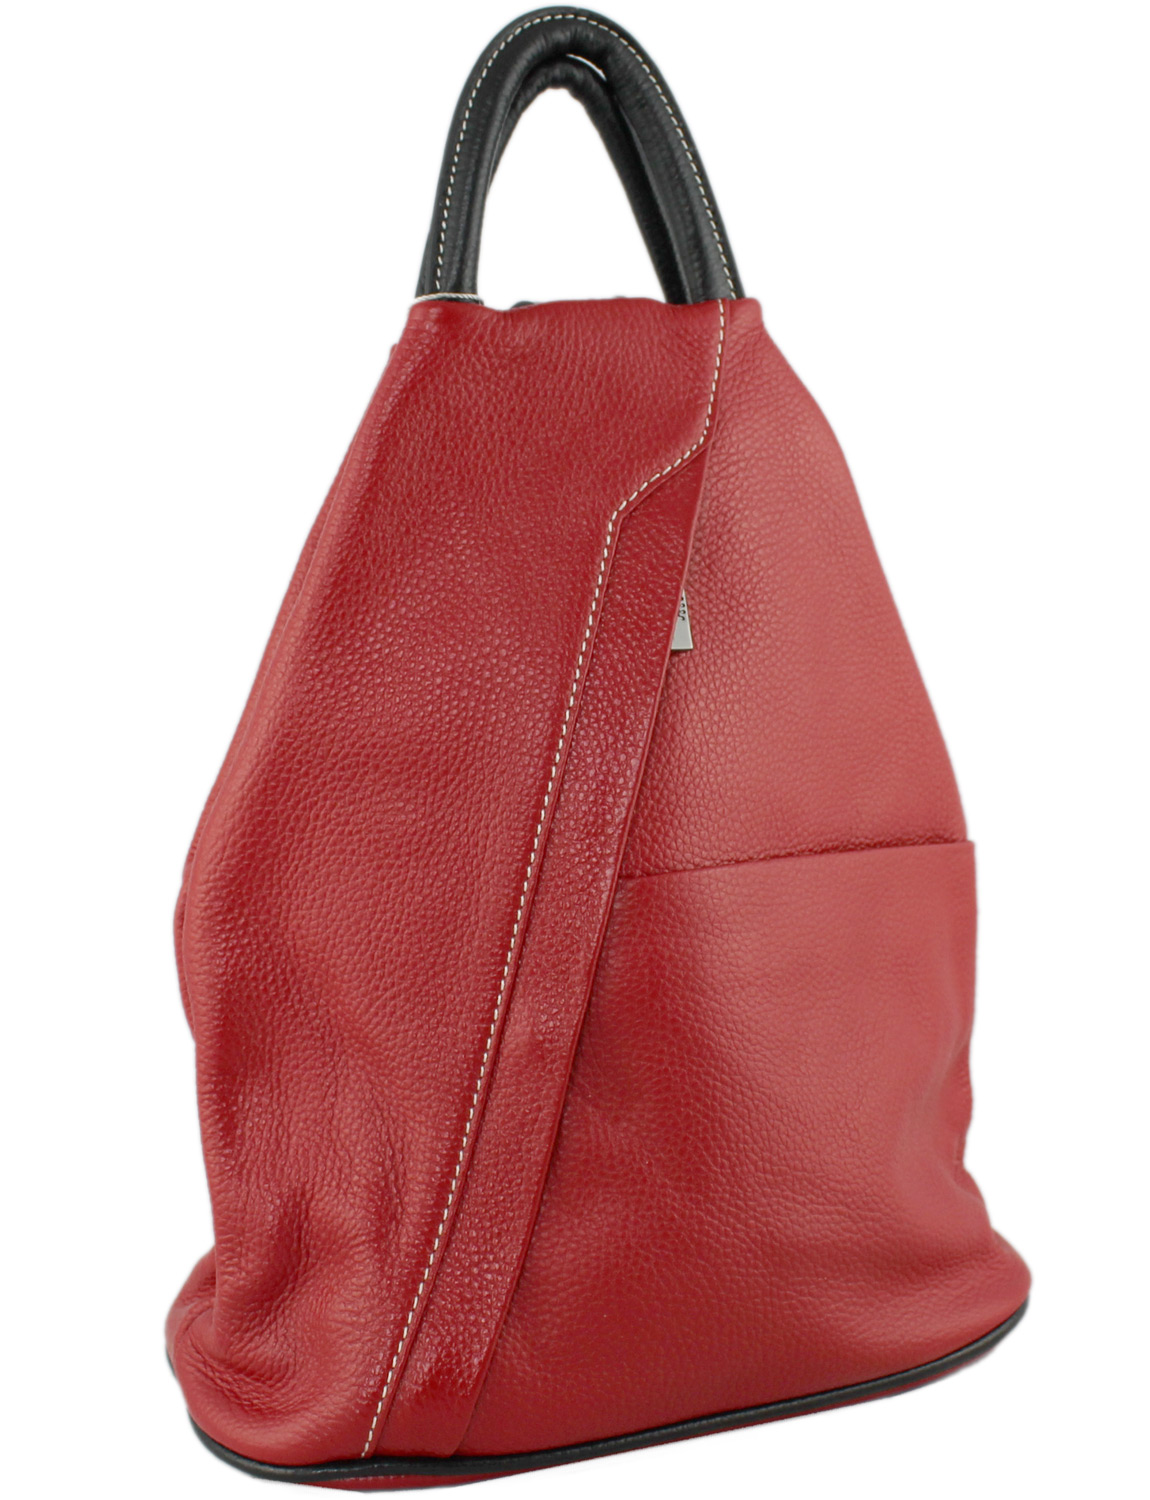 Tuscany Soft Leather Backpack in Red with Black Trim